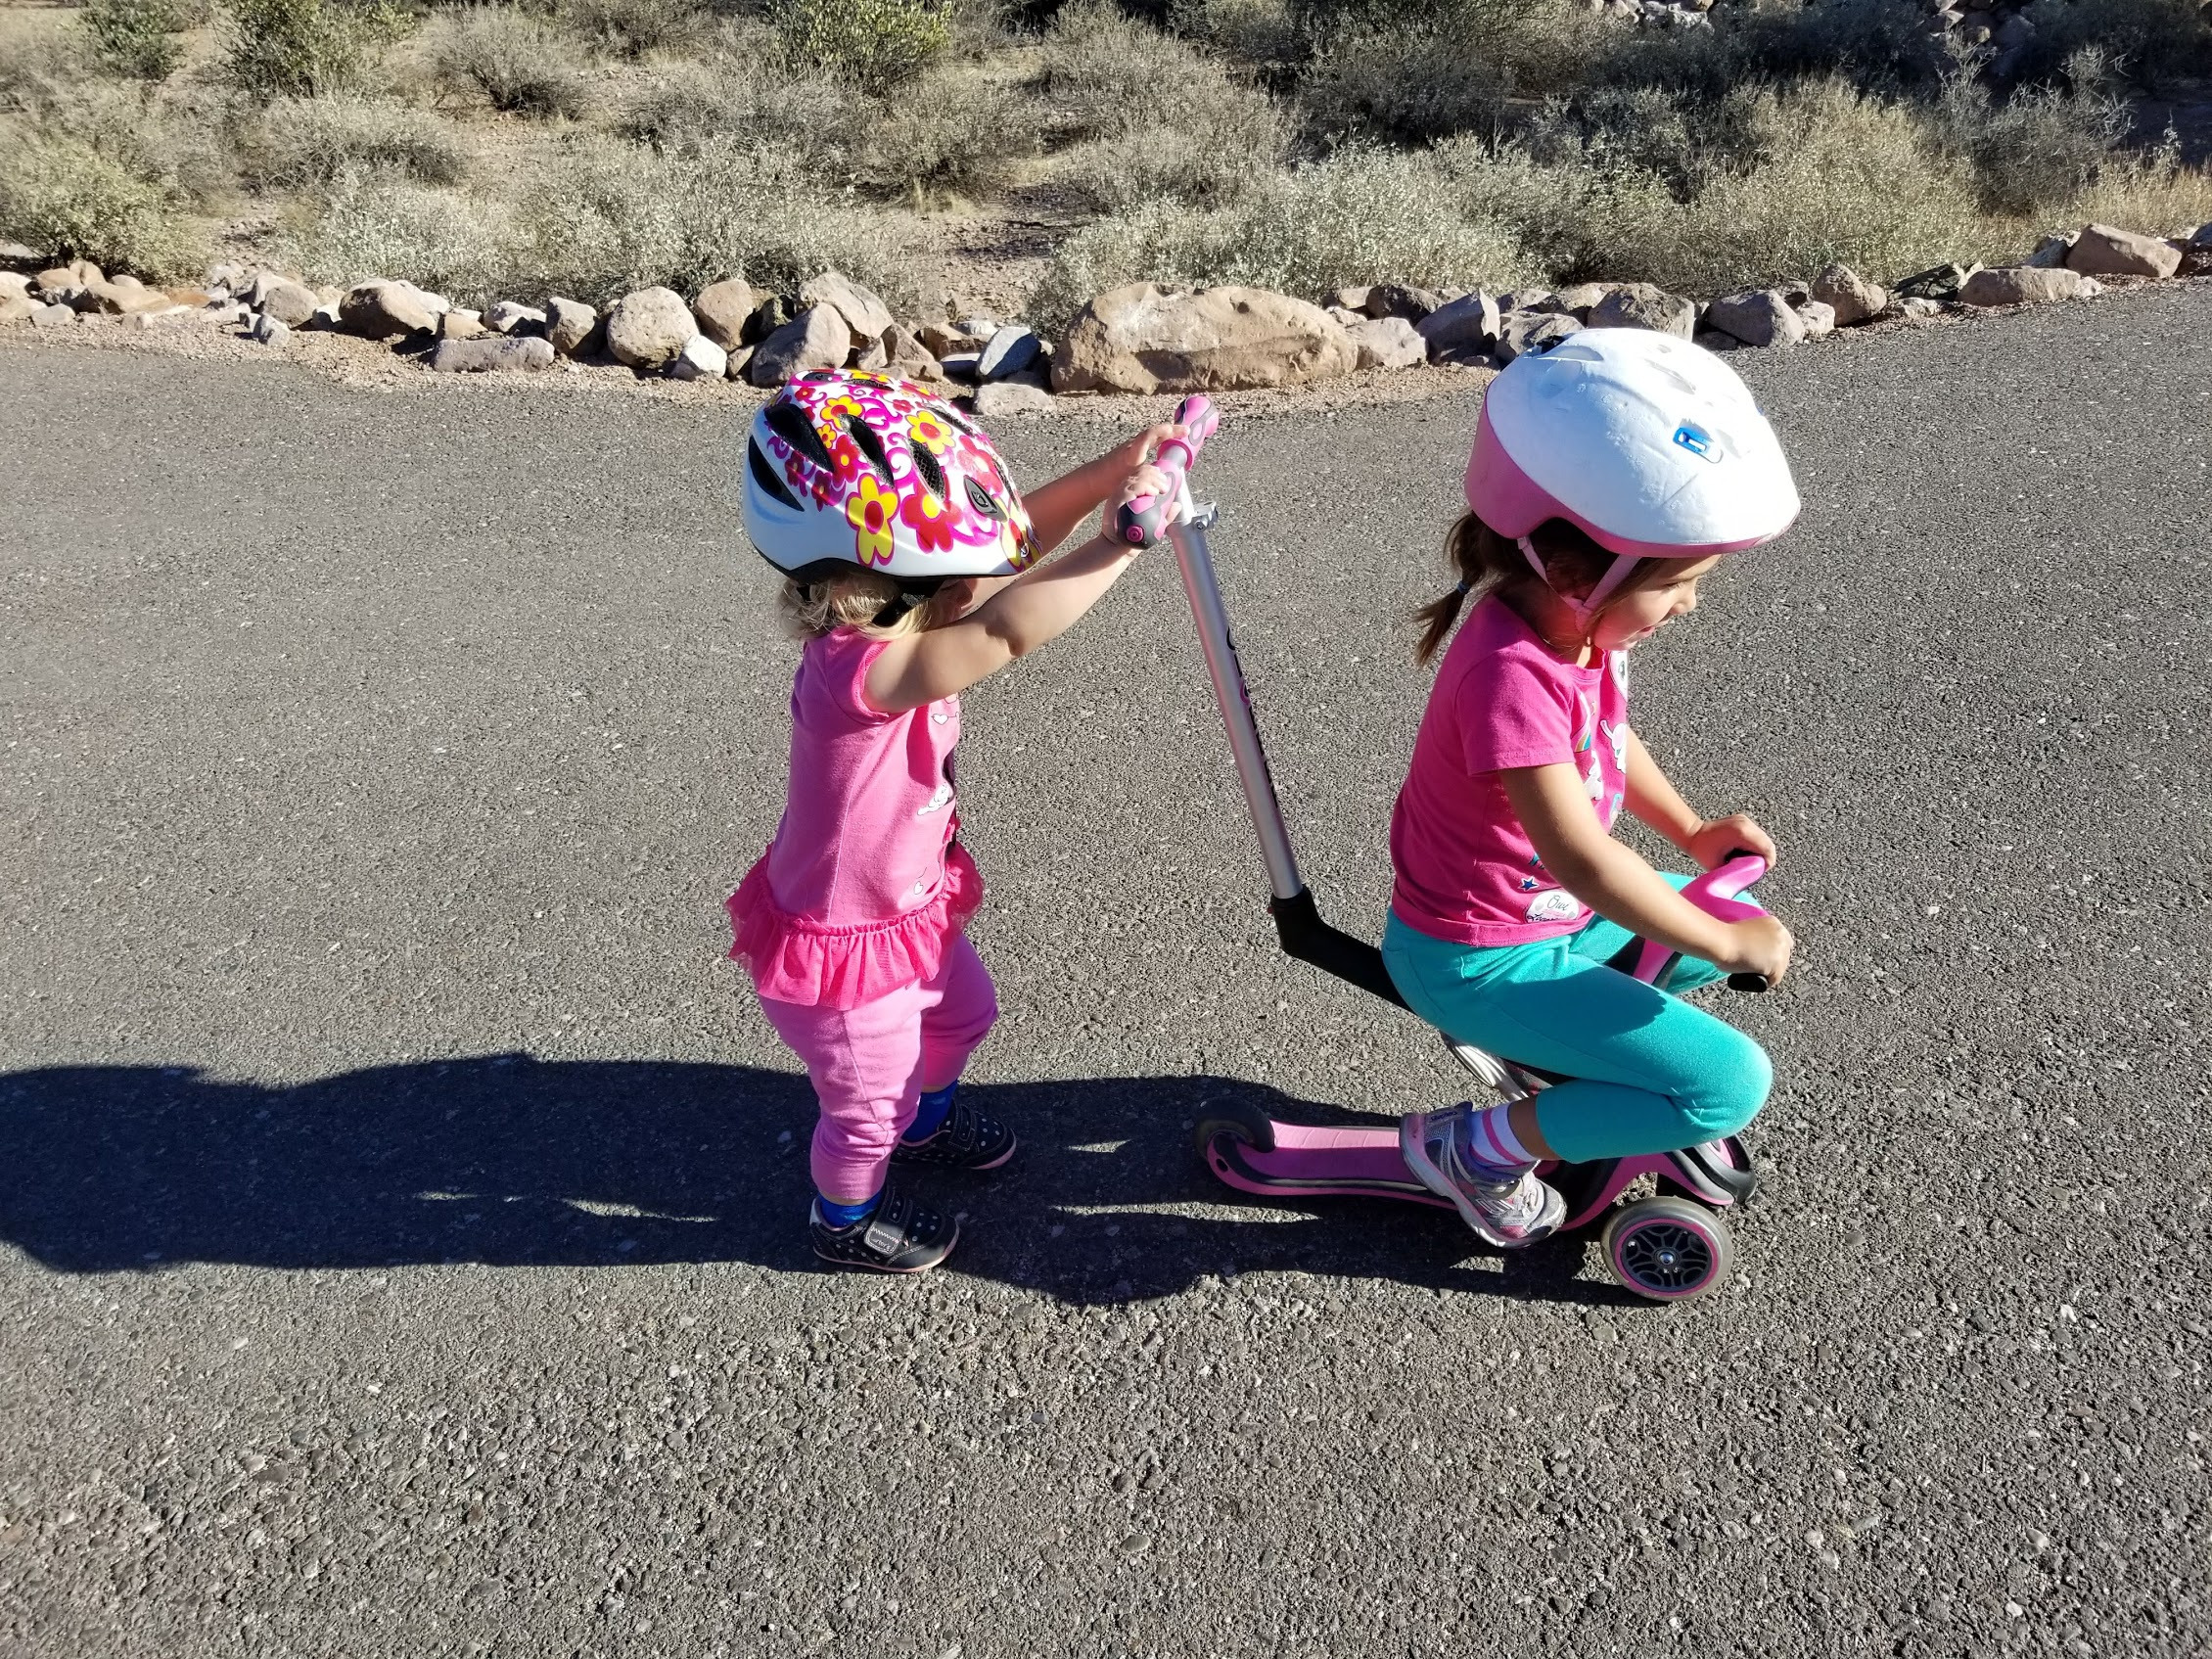 Eliza pushing Eloise on scooter